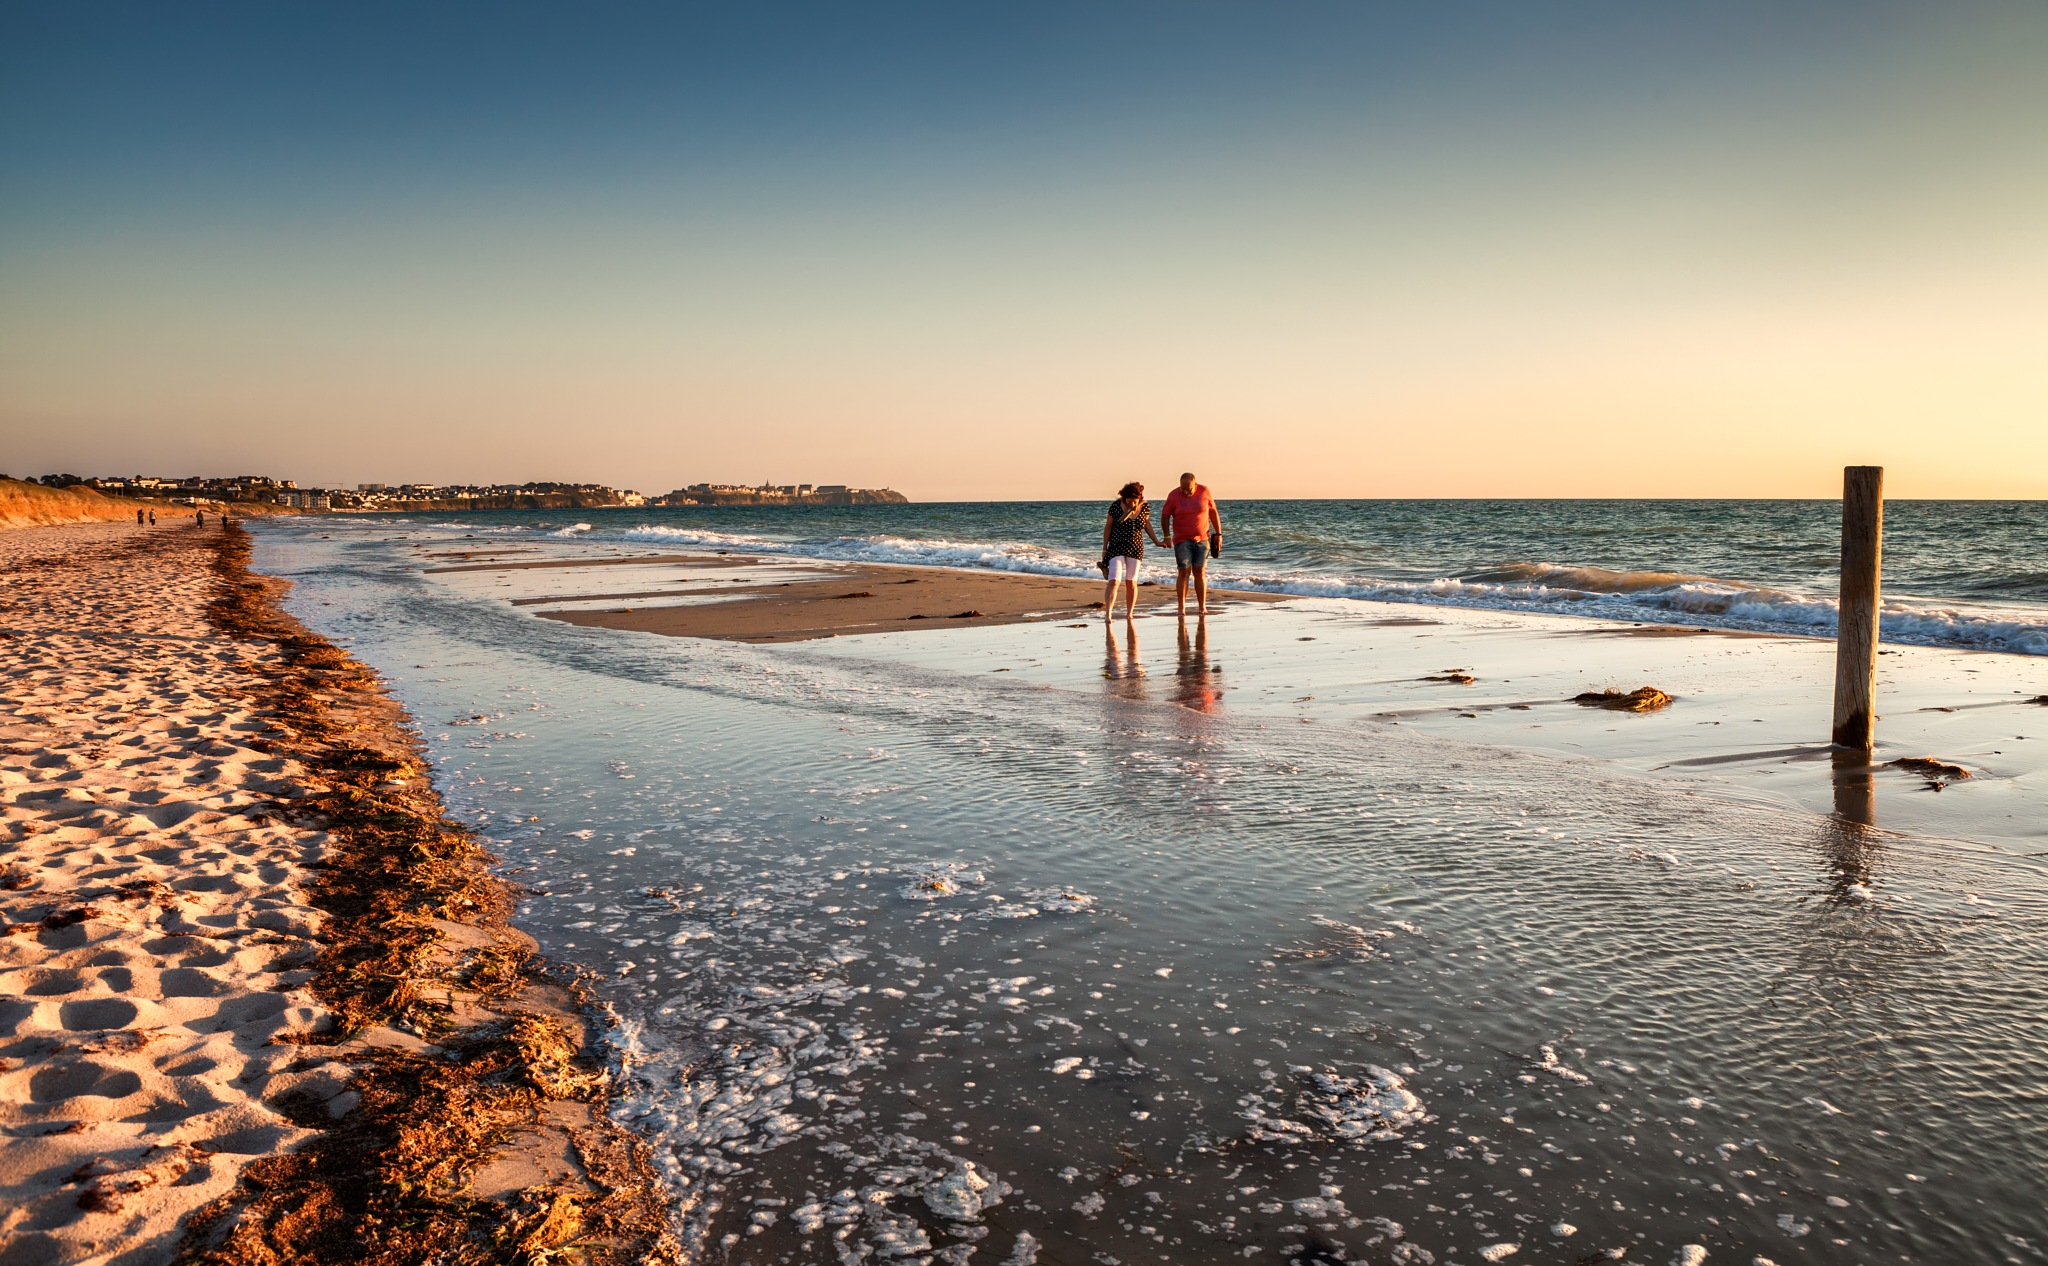 Walkers on the beach by Sylvain Marcelle